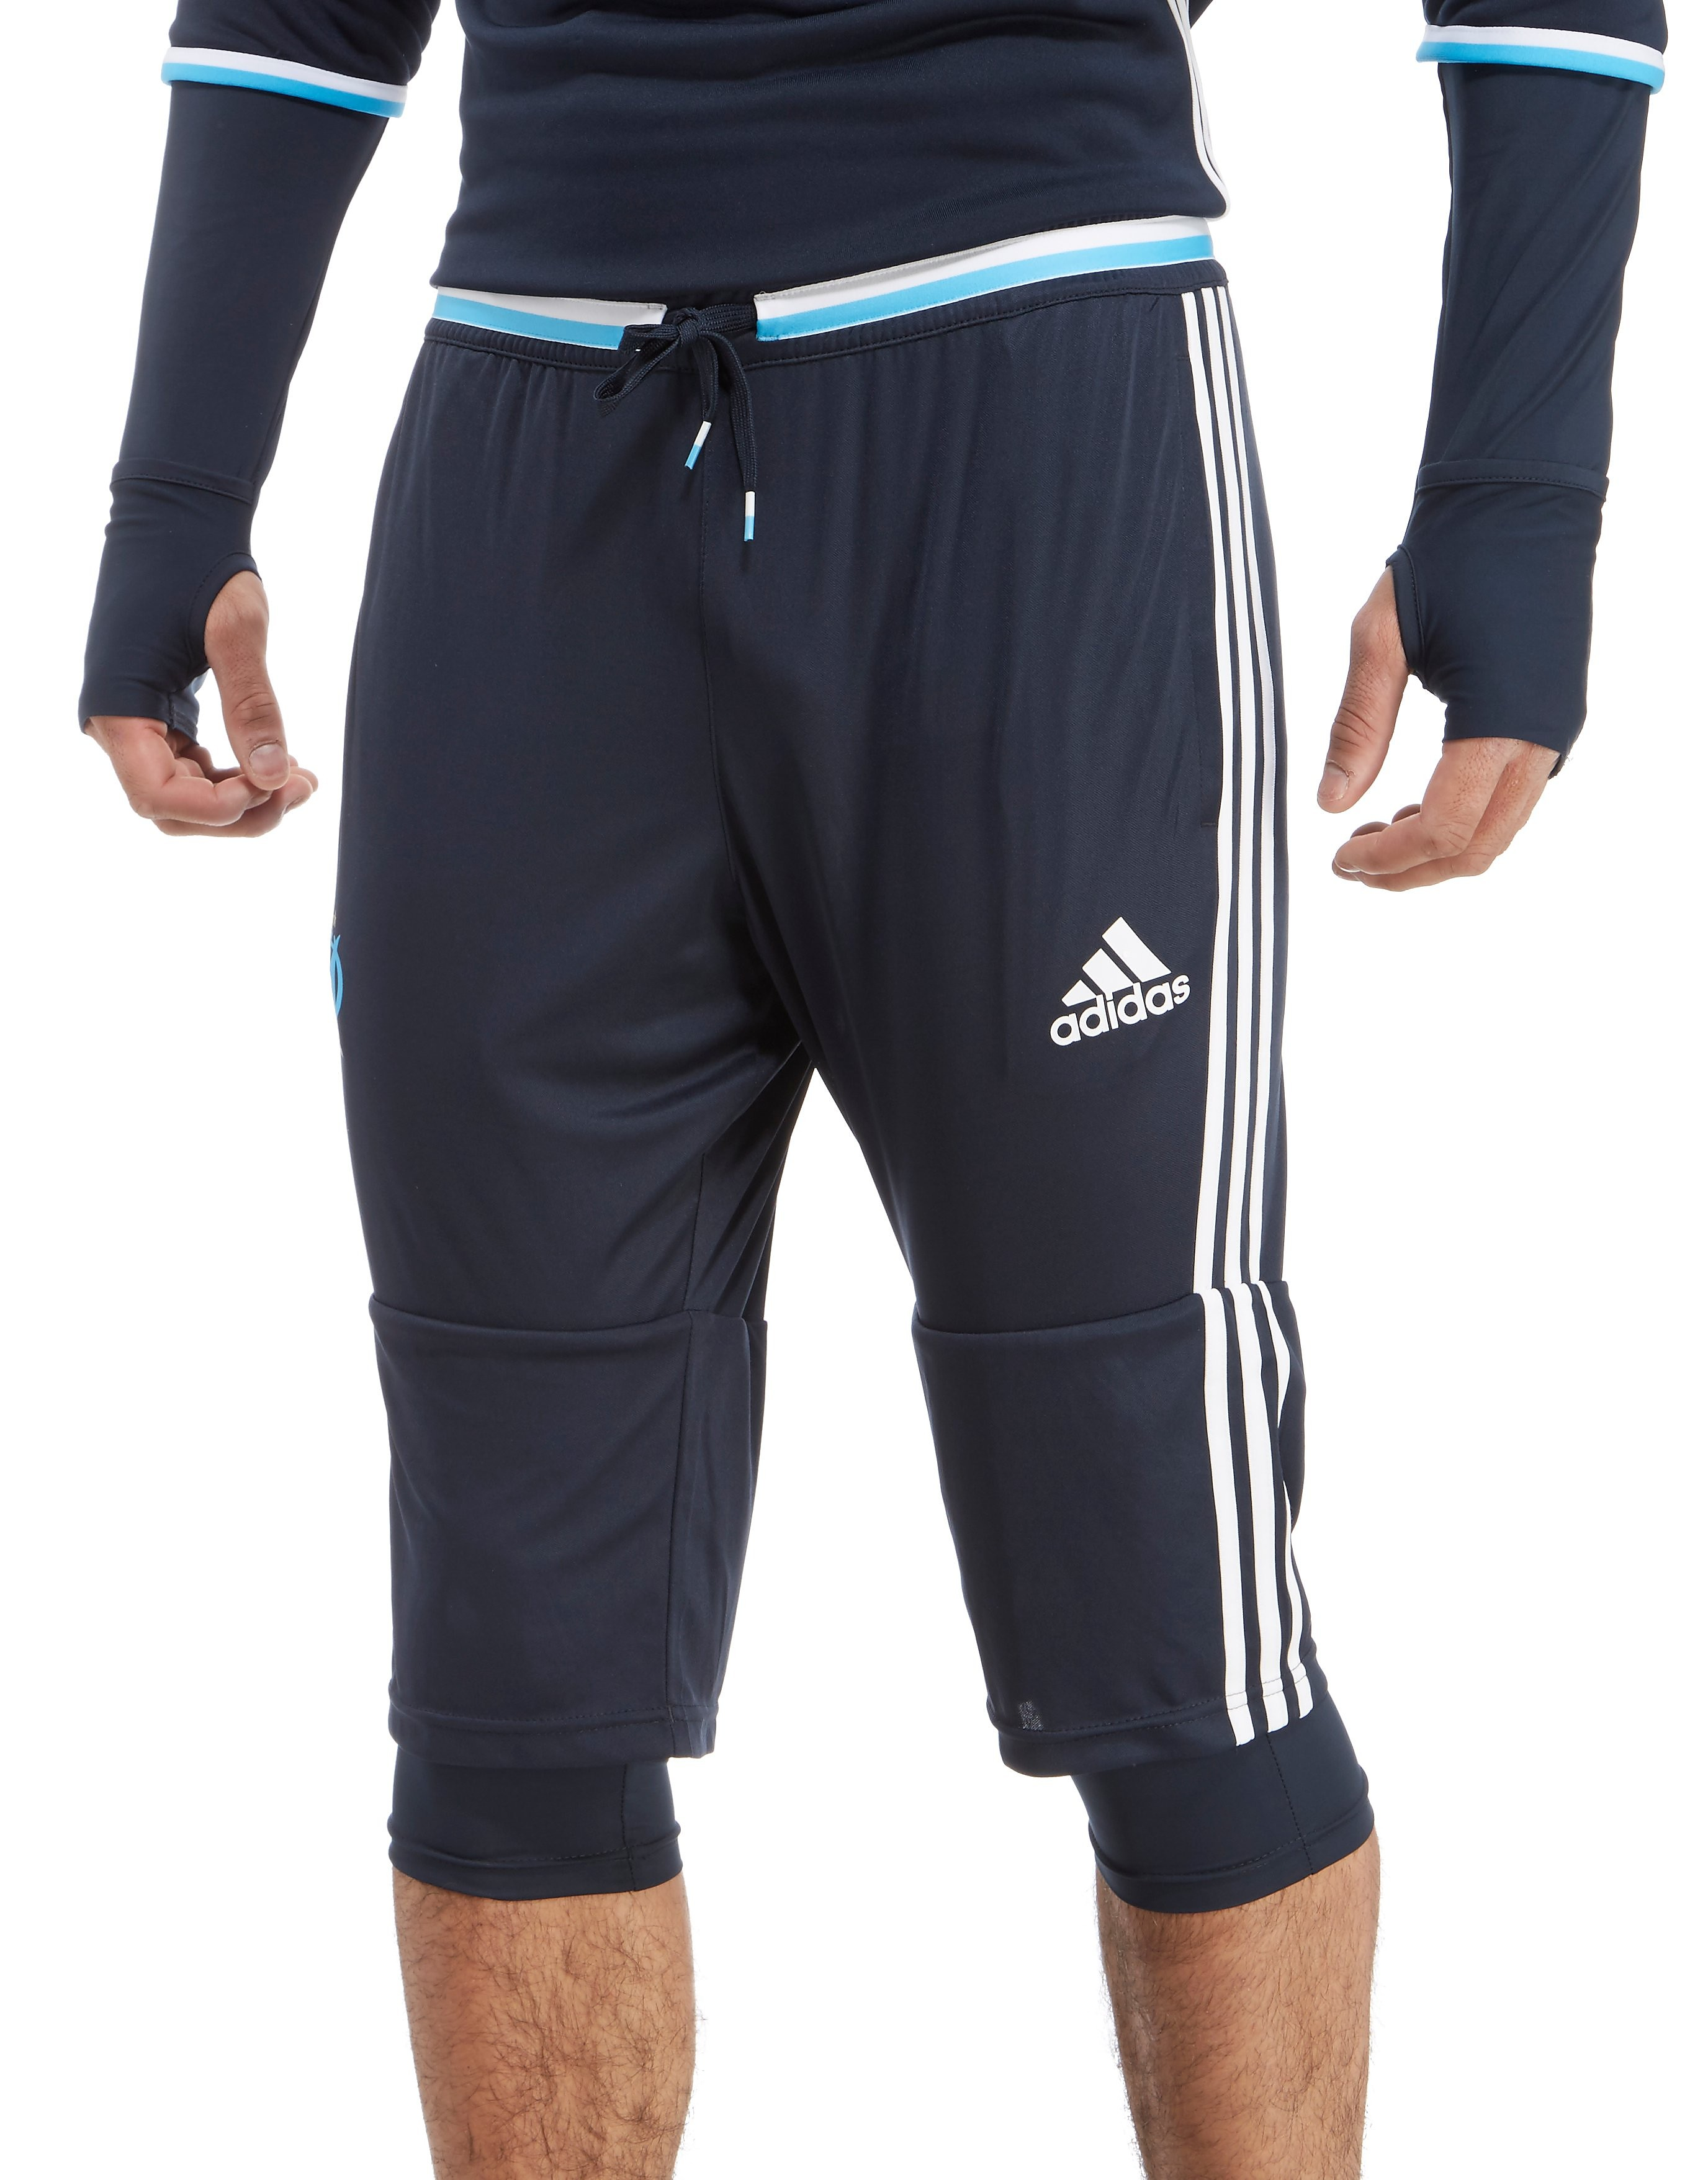 adidas Olympique Marseille 2016/17 34 Train Pants